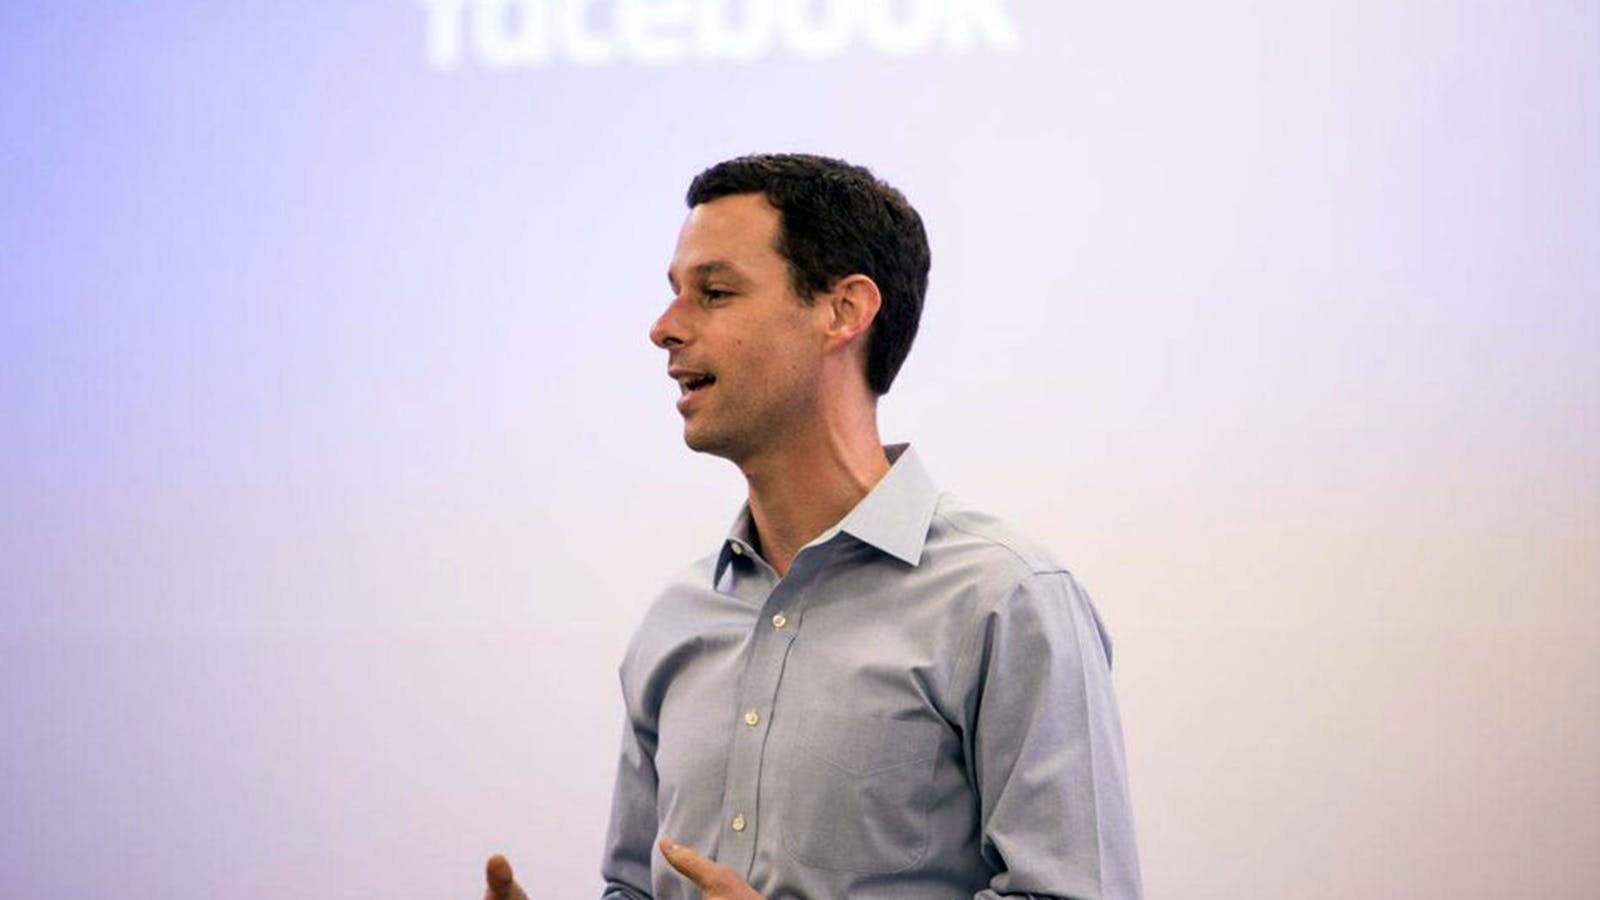 Facebook vice president Dan Levy has said the company is acquiring Kustomer because more businesses are interacting with their customers on Facebook apps. Photo courtesy of Facebook.